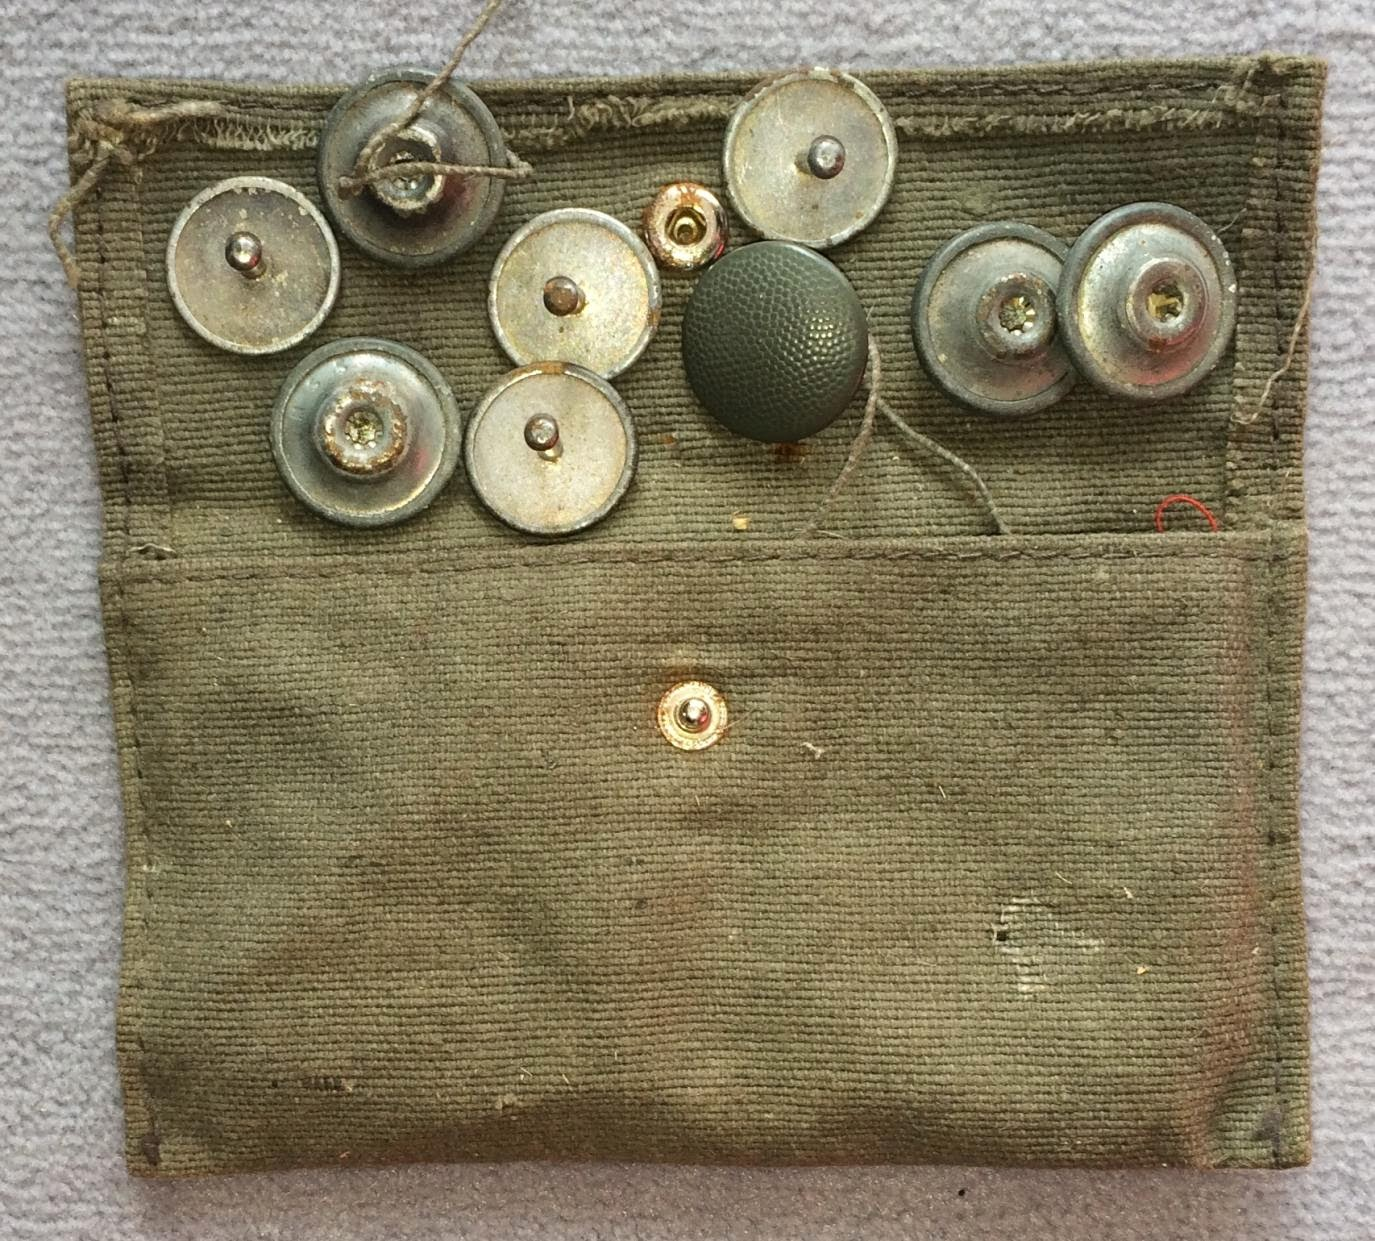 Trousse couture wh alpes militaria for Trousse couture